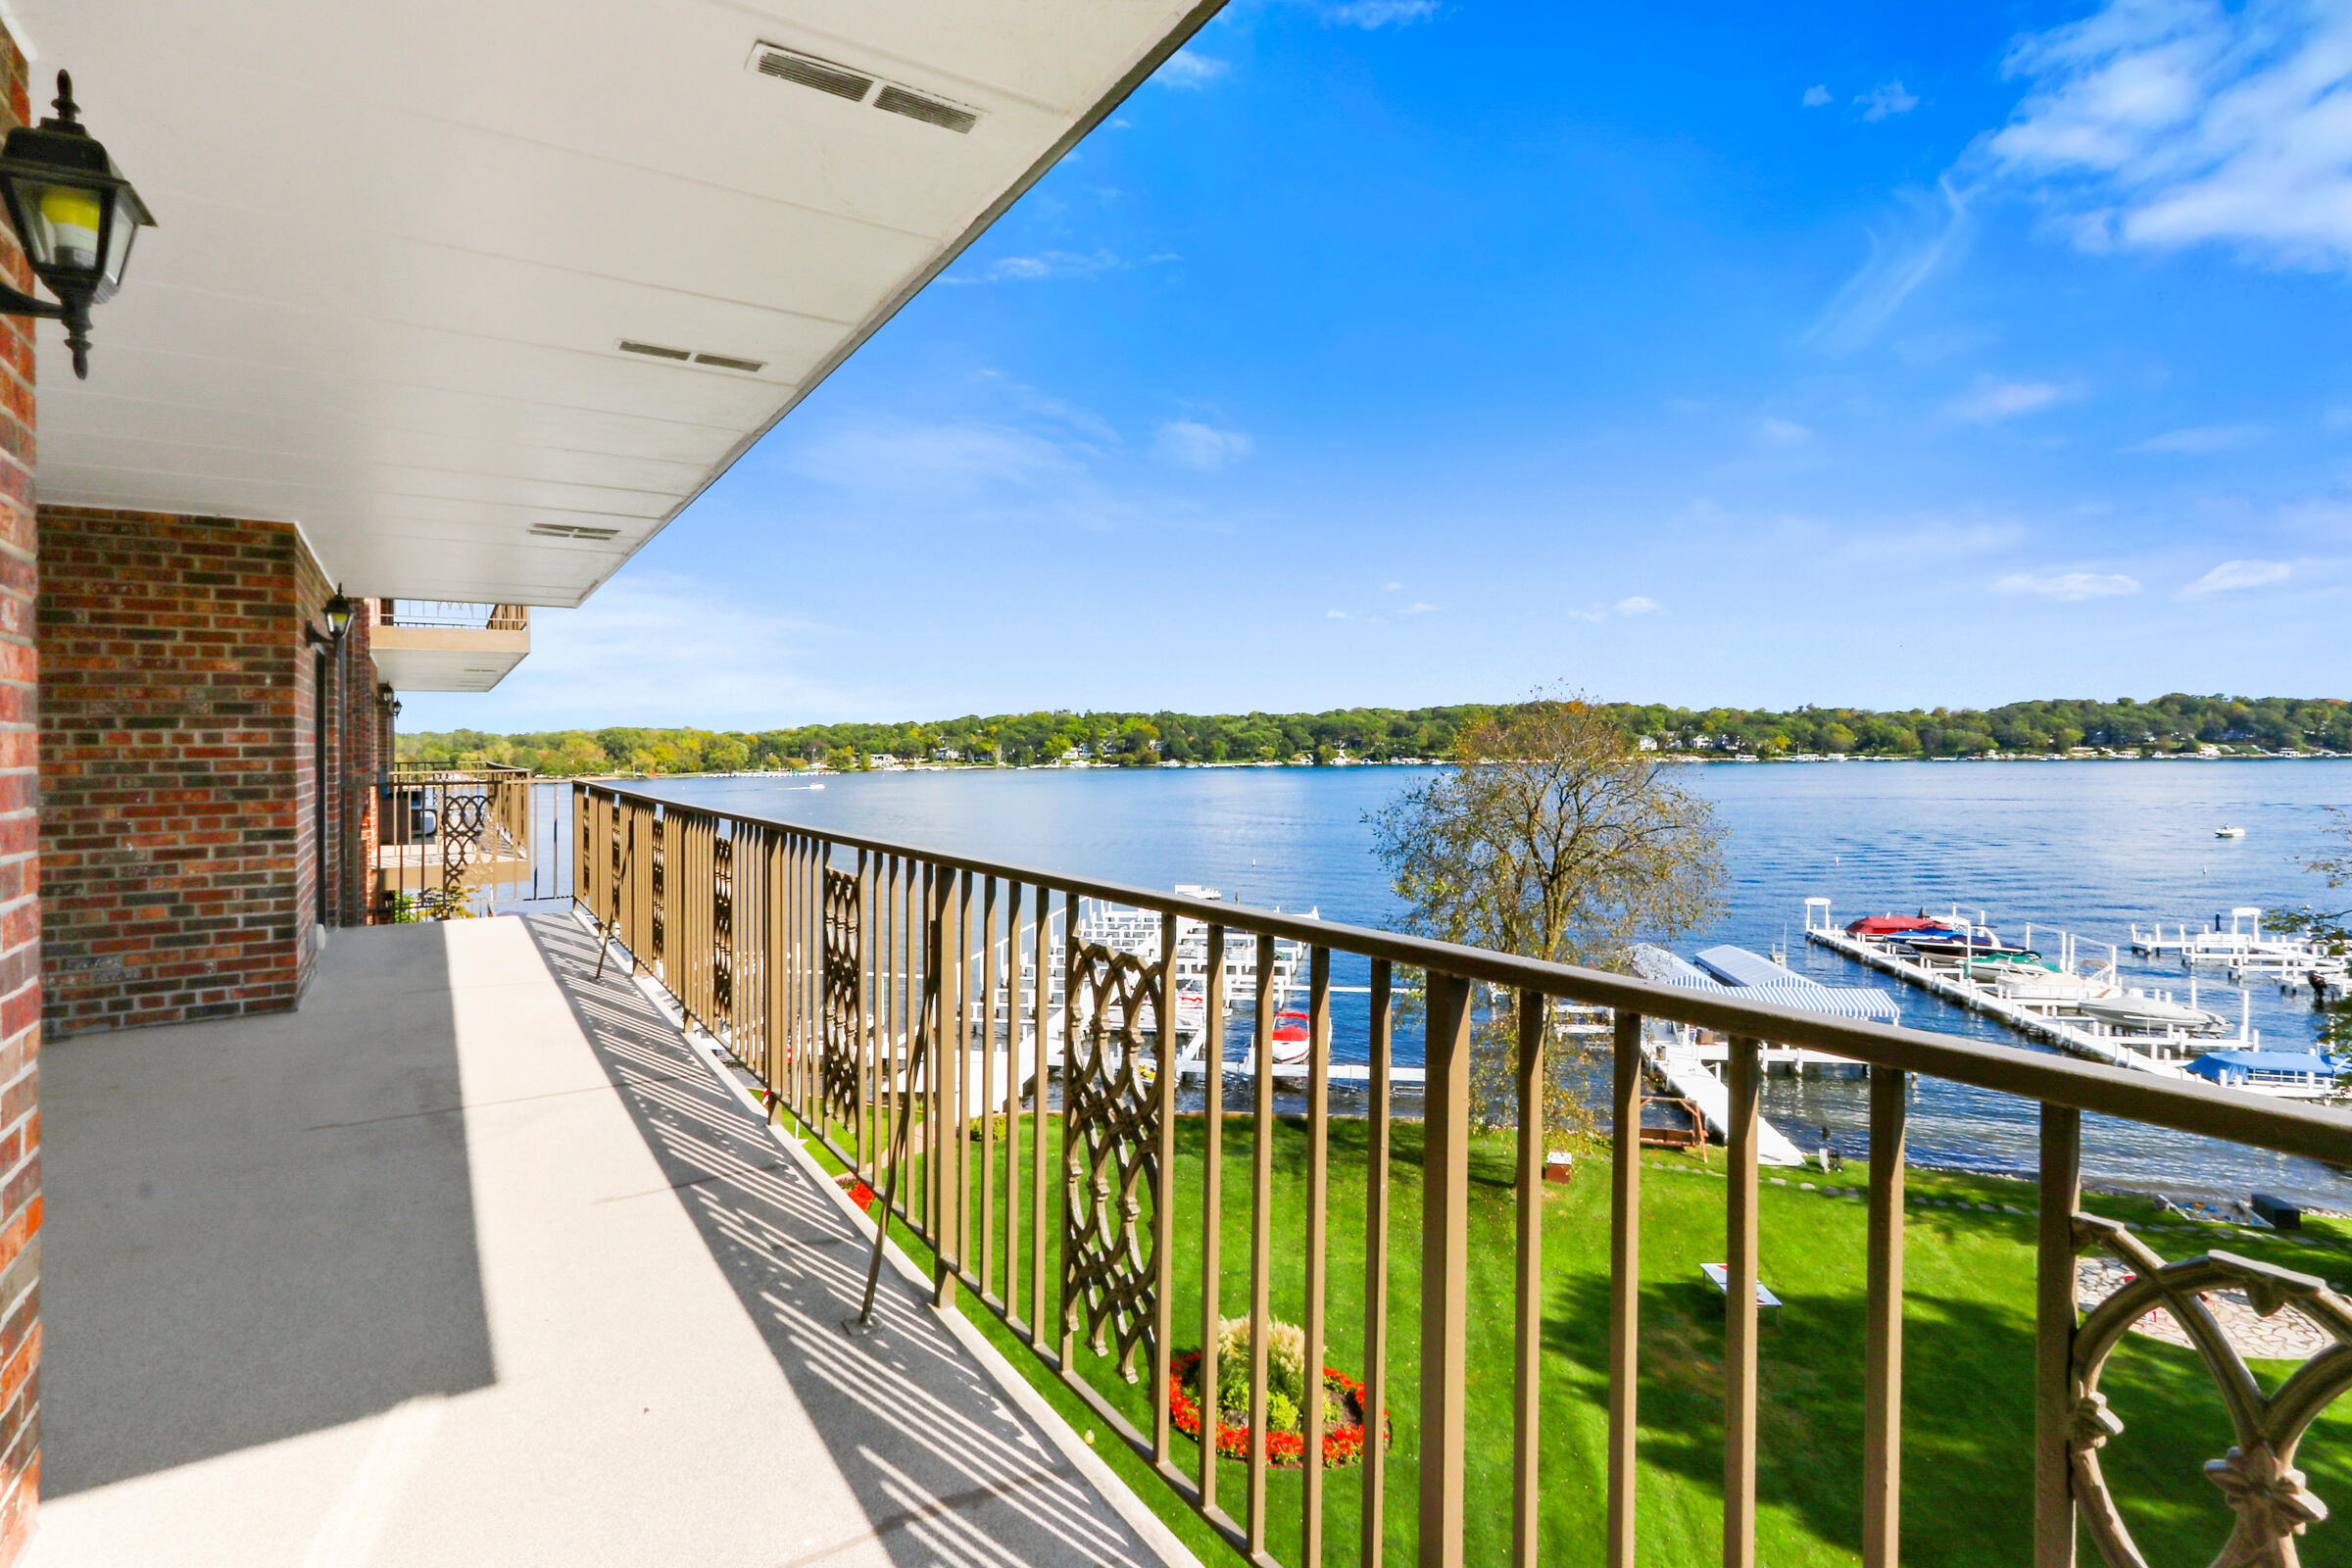 9 Walworth Ave, Williams Bay, Wisconsin 53191, 2 Bedrooms Bedrooms, 5 Rooms Rooms,2 BathroomsBathrooms,Condominiums,For Sale,Walworth Ave,6,1767976